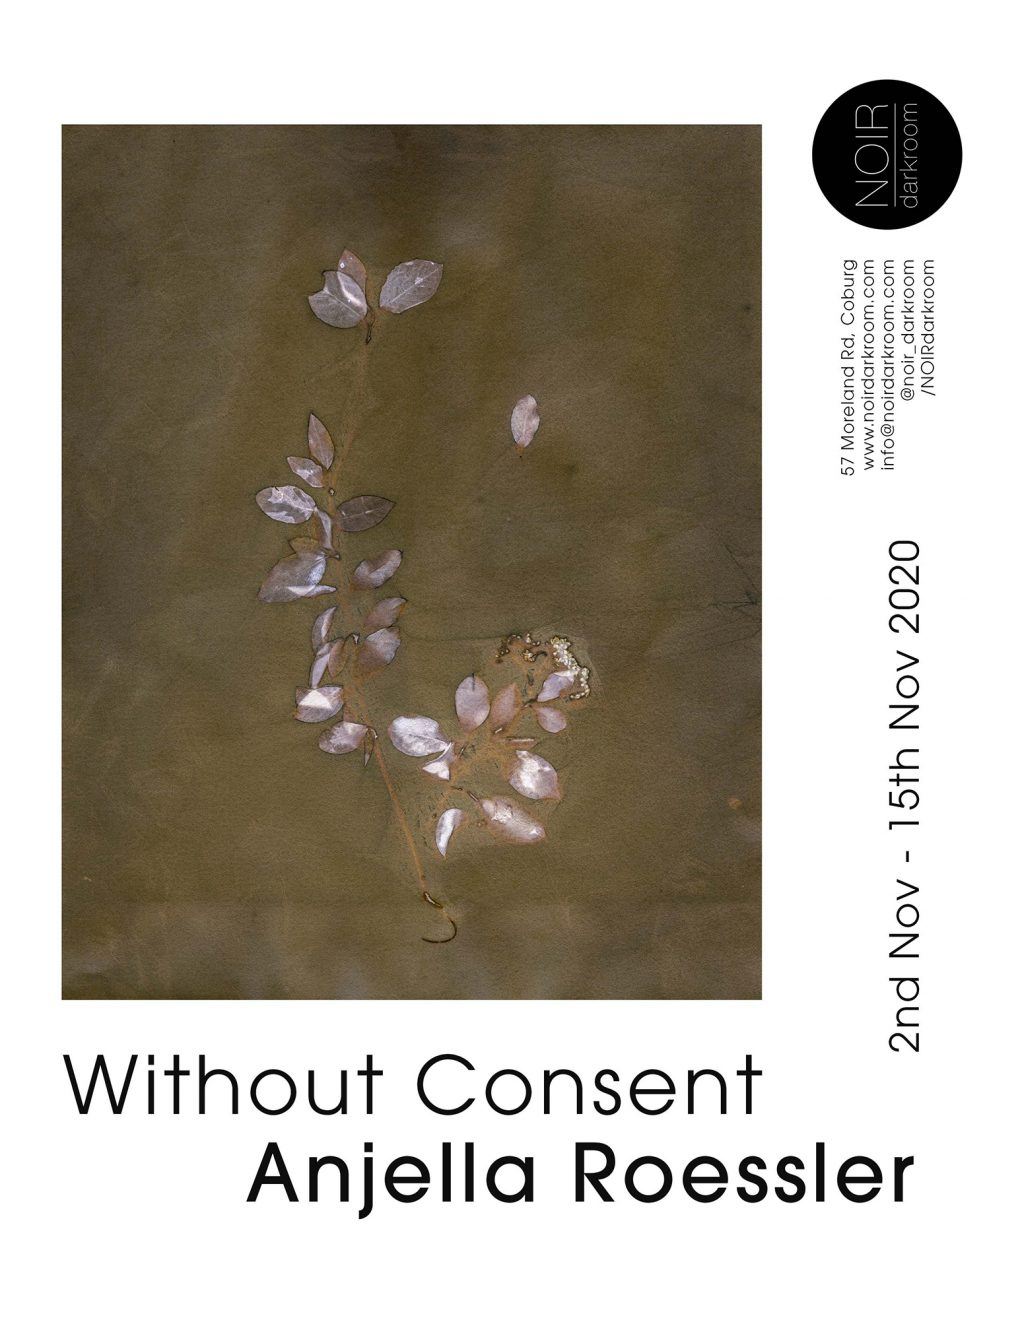 Exhibition: Without Consent – Anjella Roessler